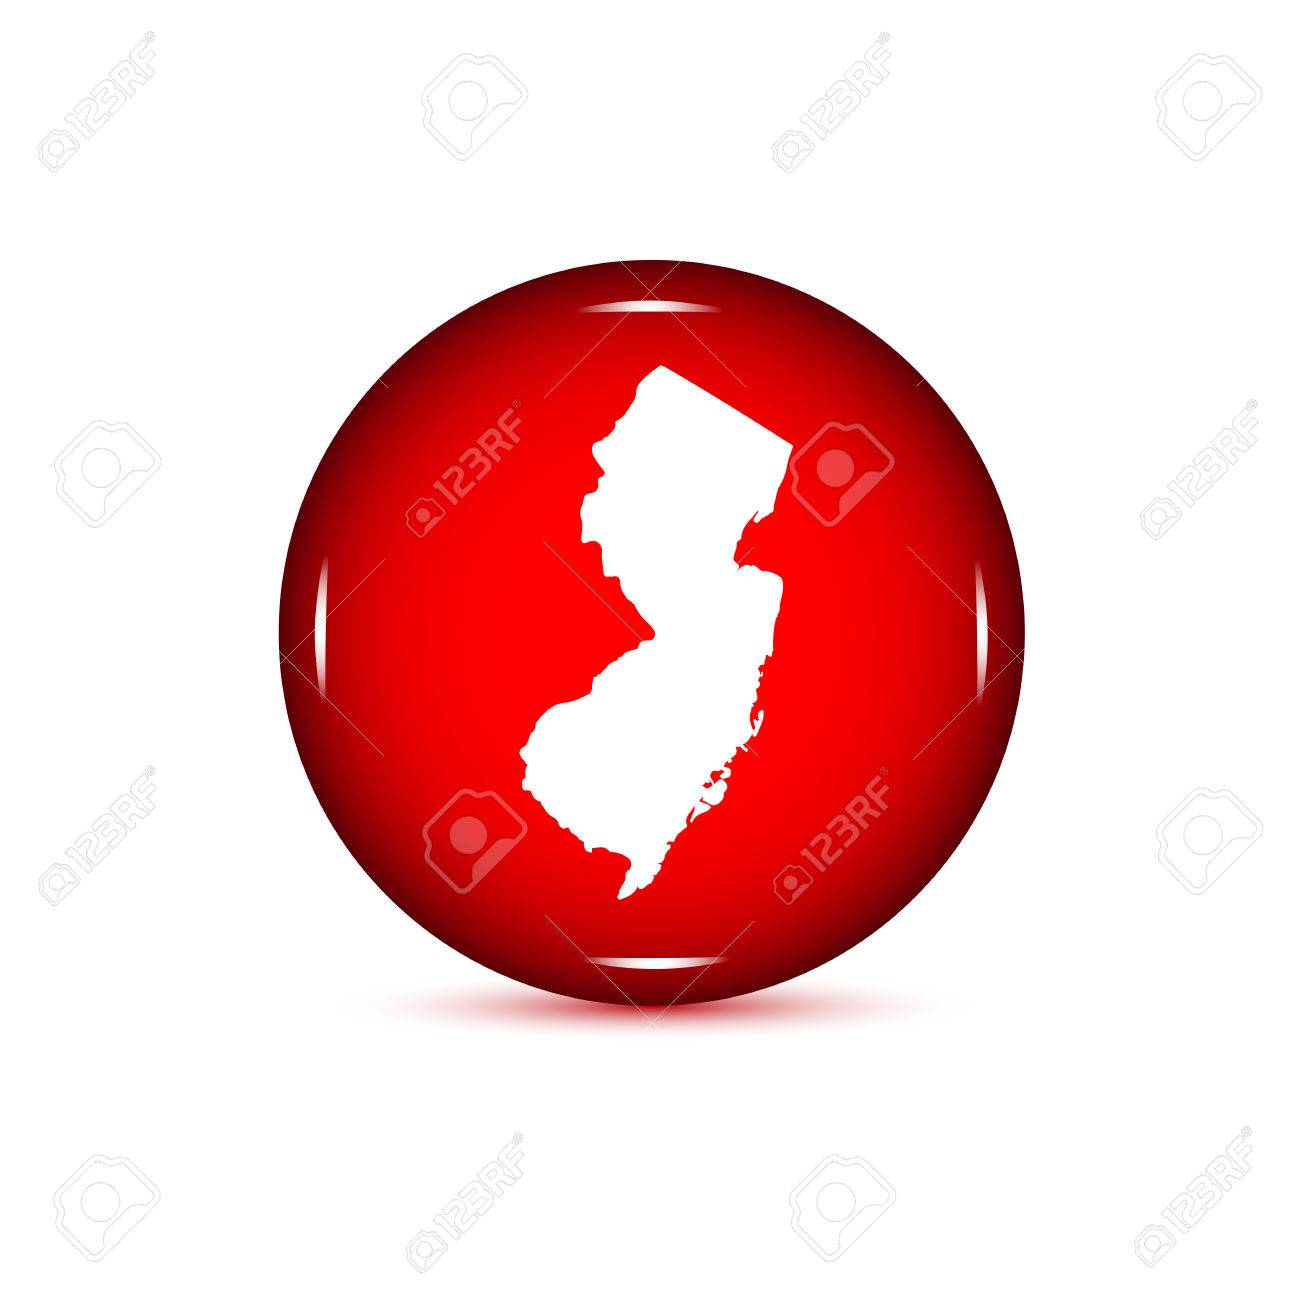 Map Of The US State Of New Jersey Red Button On A White - Us map all white red background